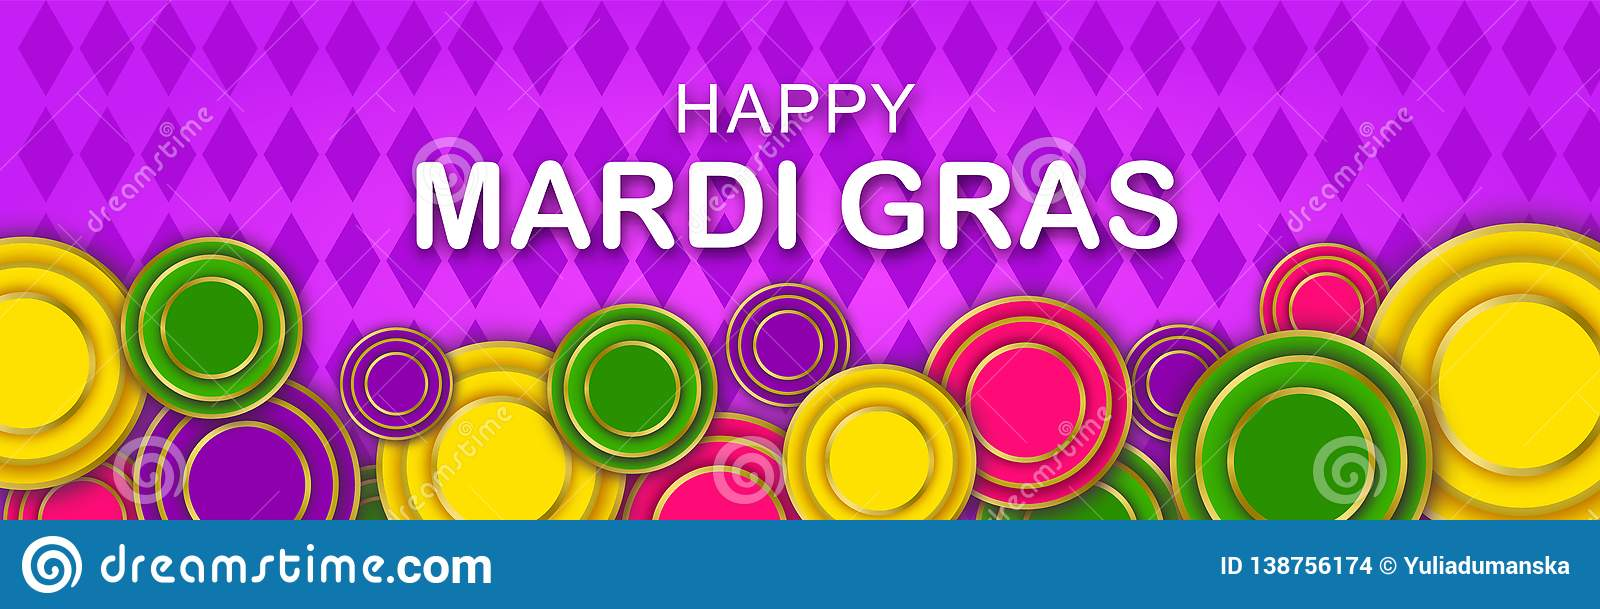 Mardi Gras Party banner with a Lettering, carnival mask, floral elements and Mardigras cover. Circus amusement poster